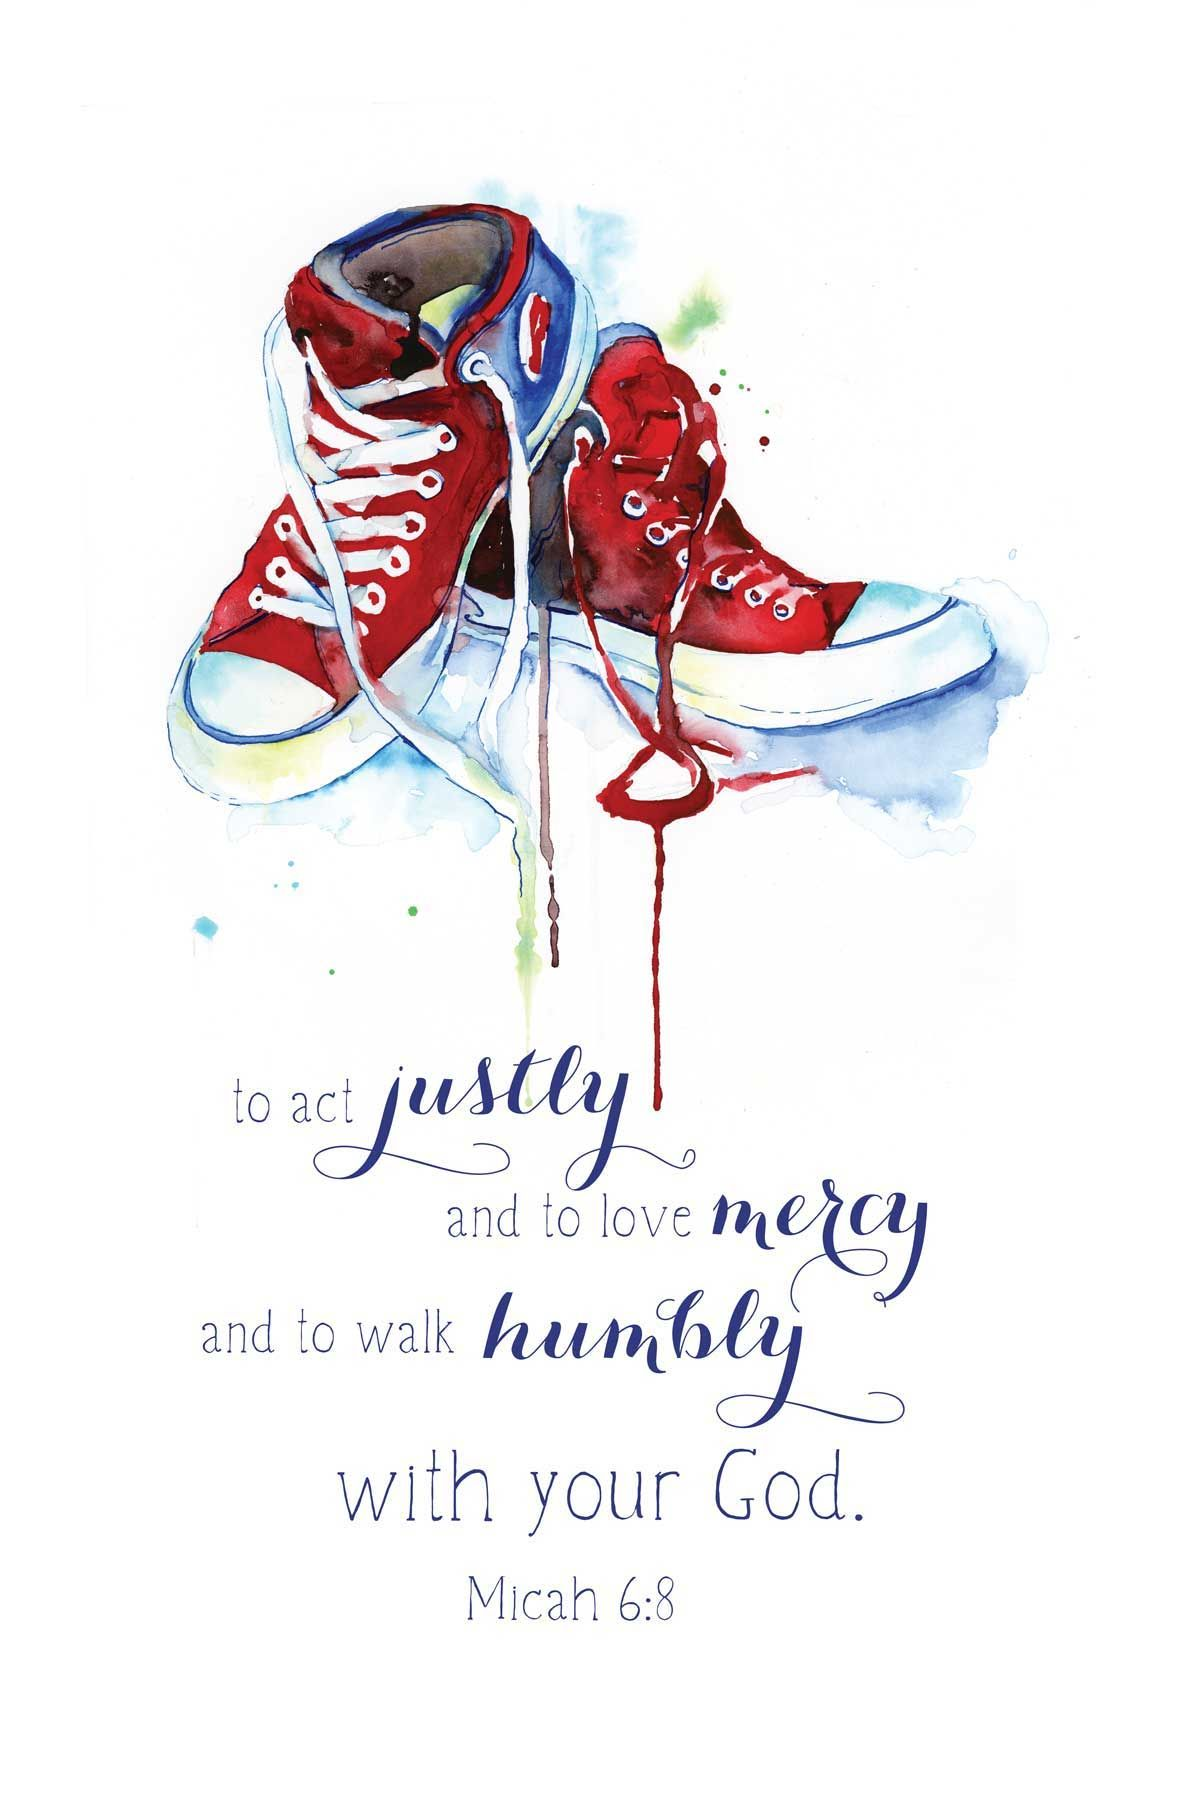 Micah 6:8: Act justly, love mercy, and walk humbly with your God. | Micah 6  8, Art prints, Micah